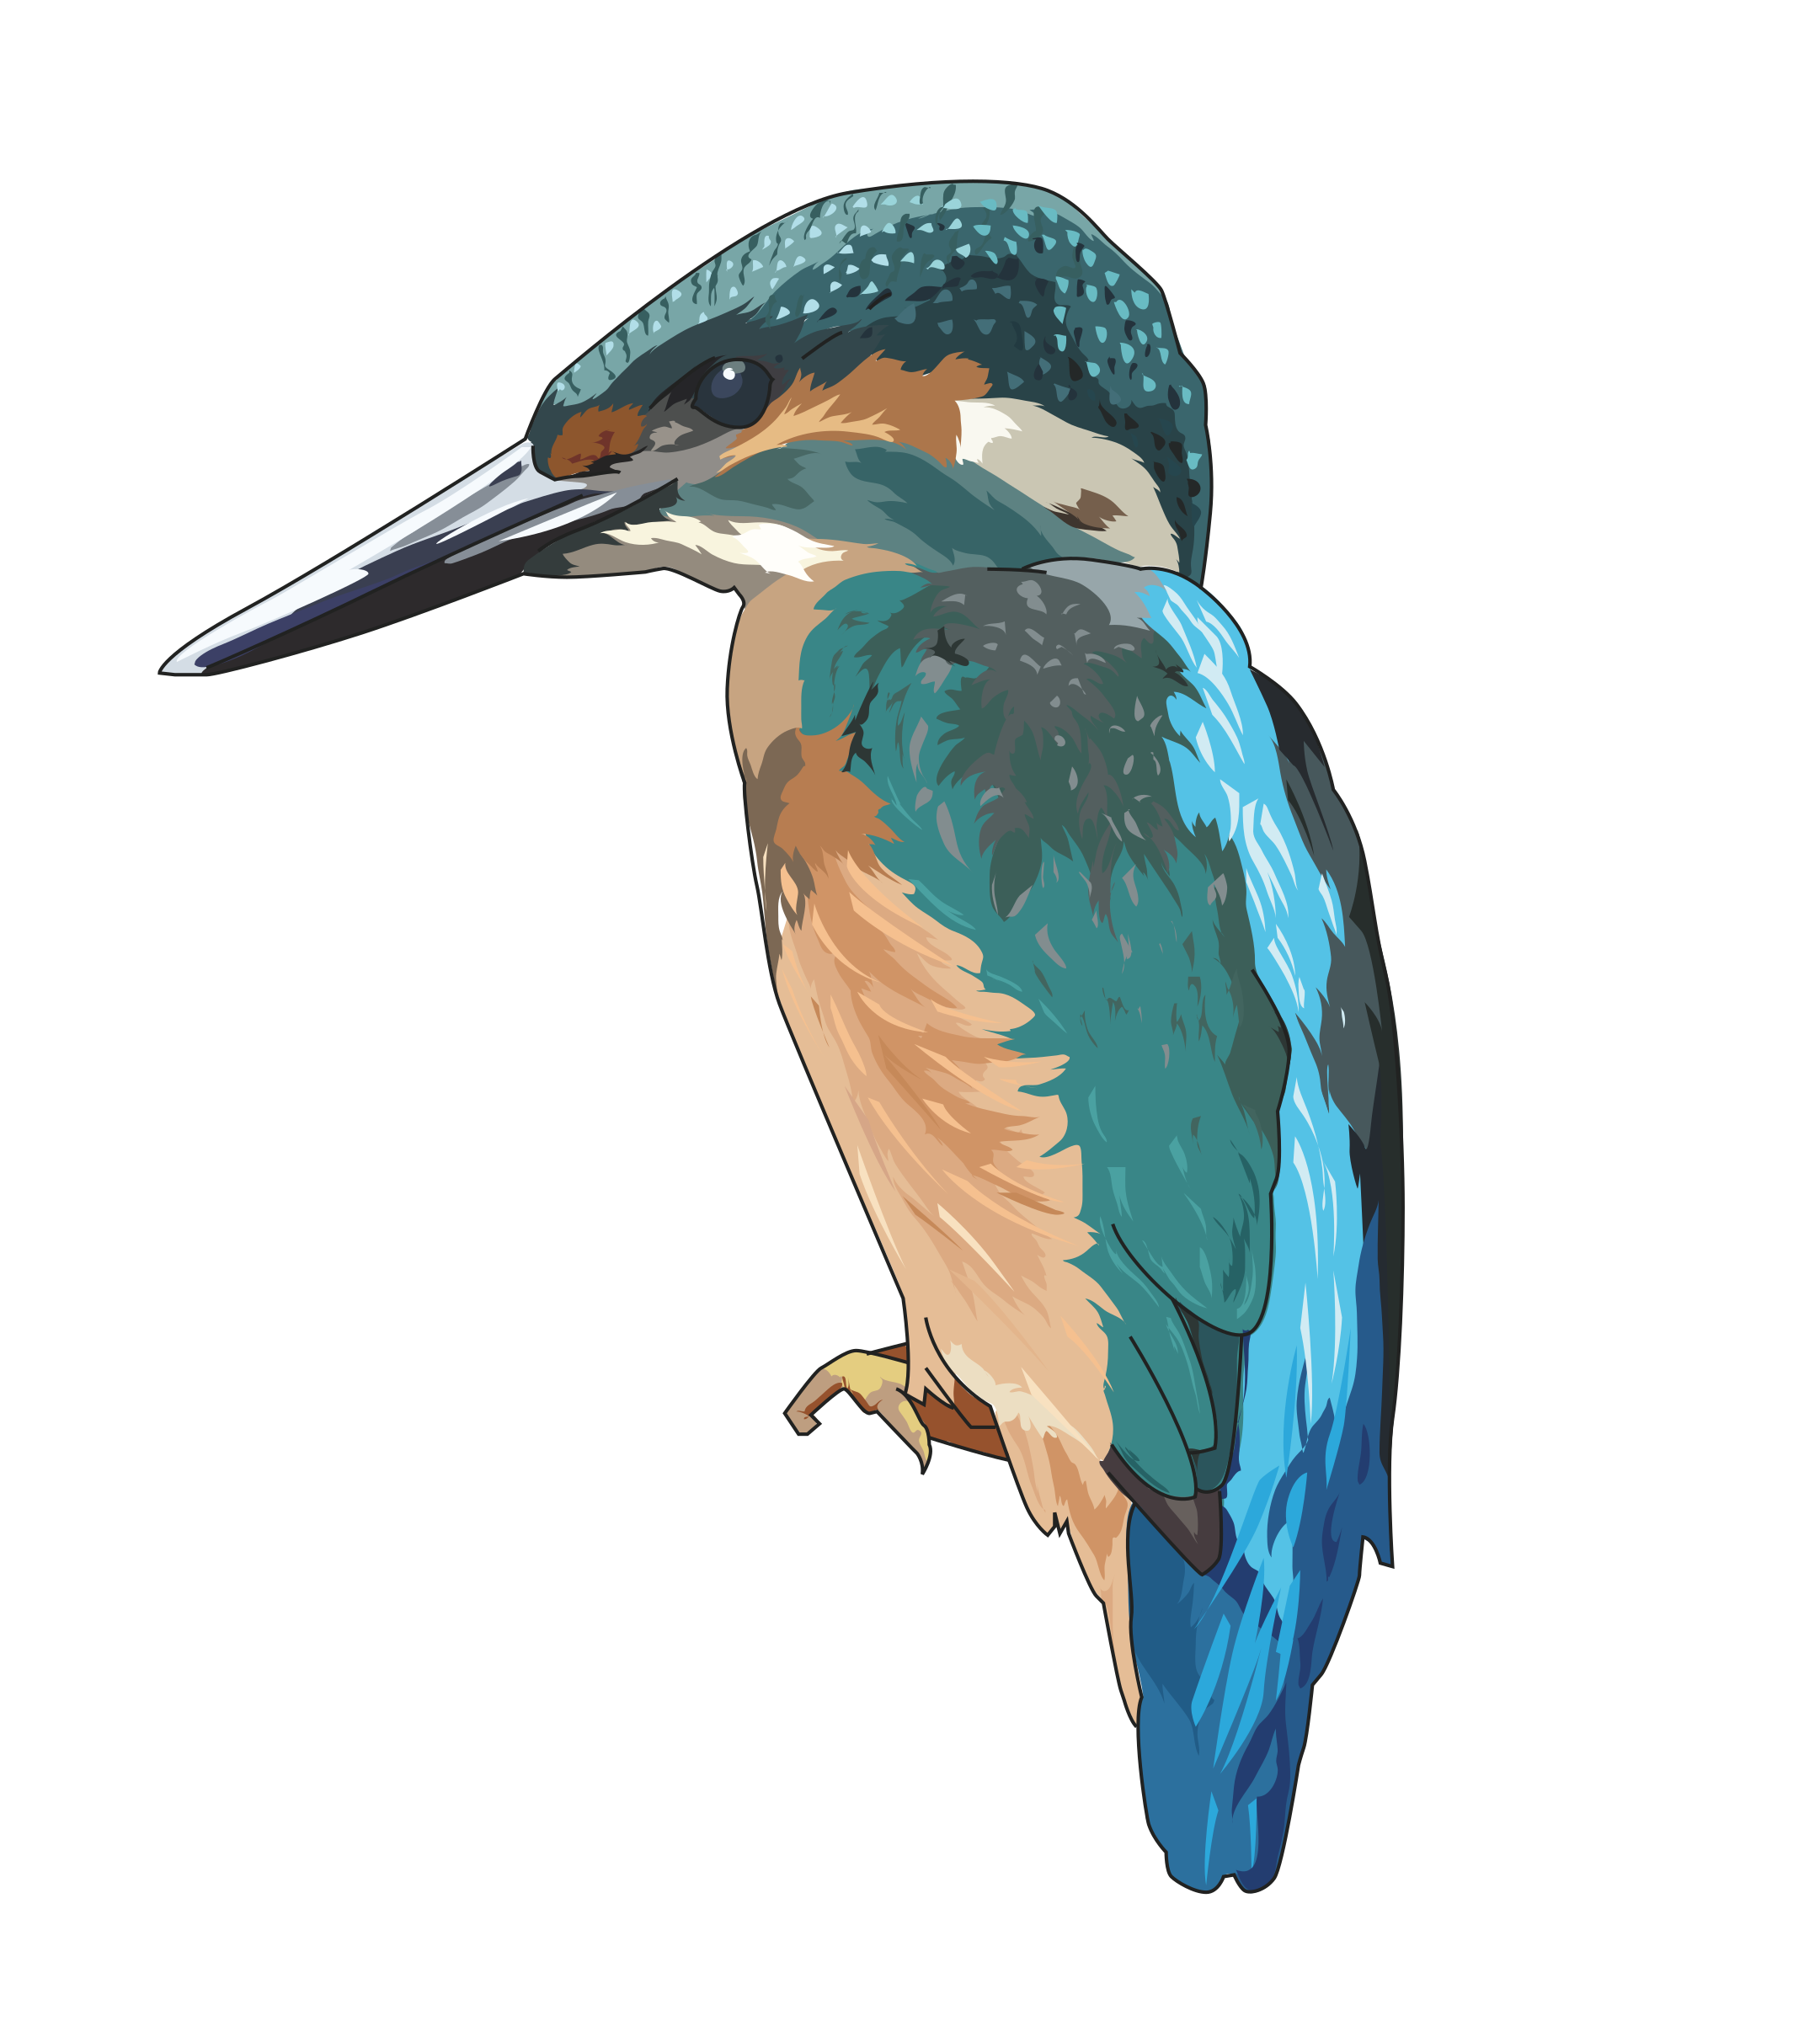 Function drawing kingfisher. Icons png free and